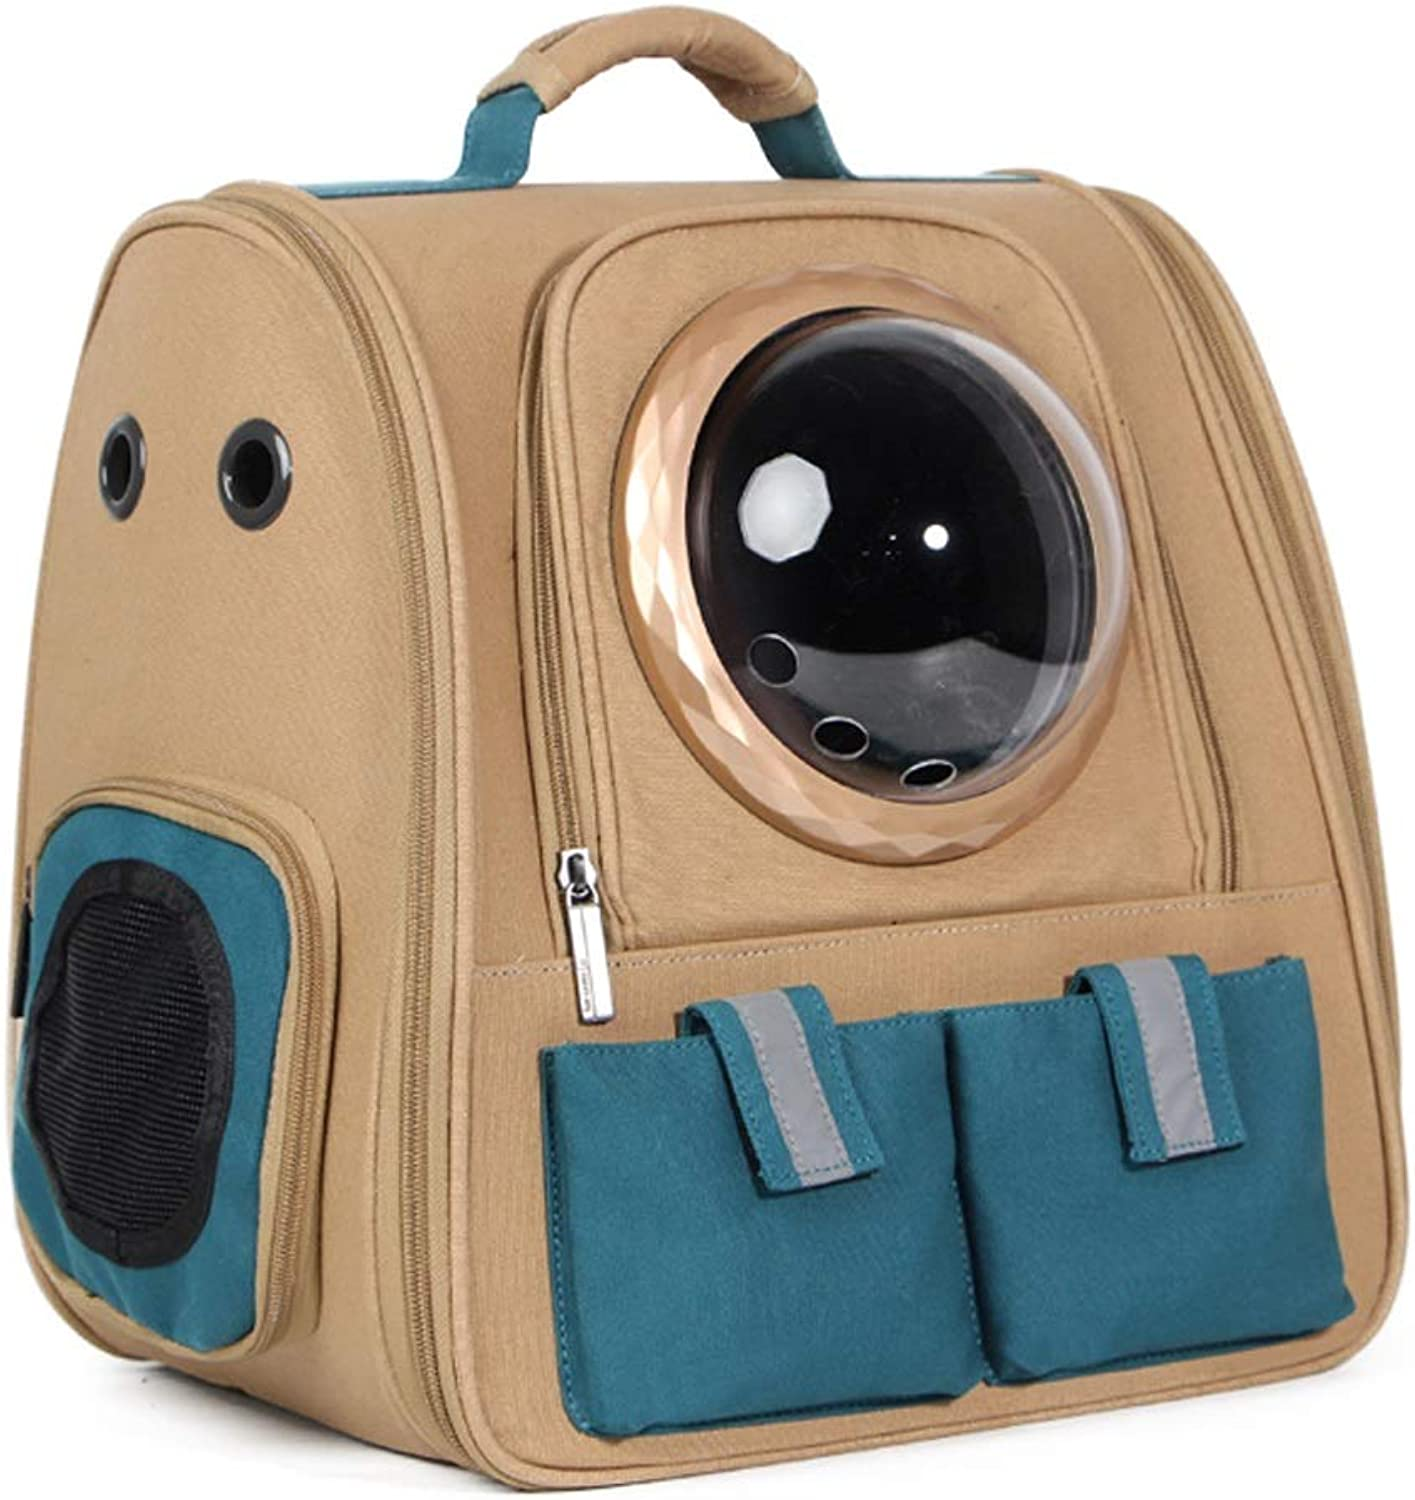 Cat Puppy Travel Hiking Camping Pet Backpack Space Bag Bubble Design Waterproof Soft Edge Adjustable Pet Backpack